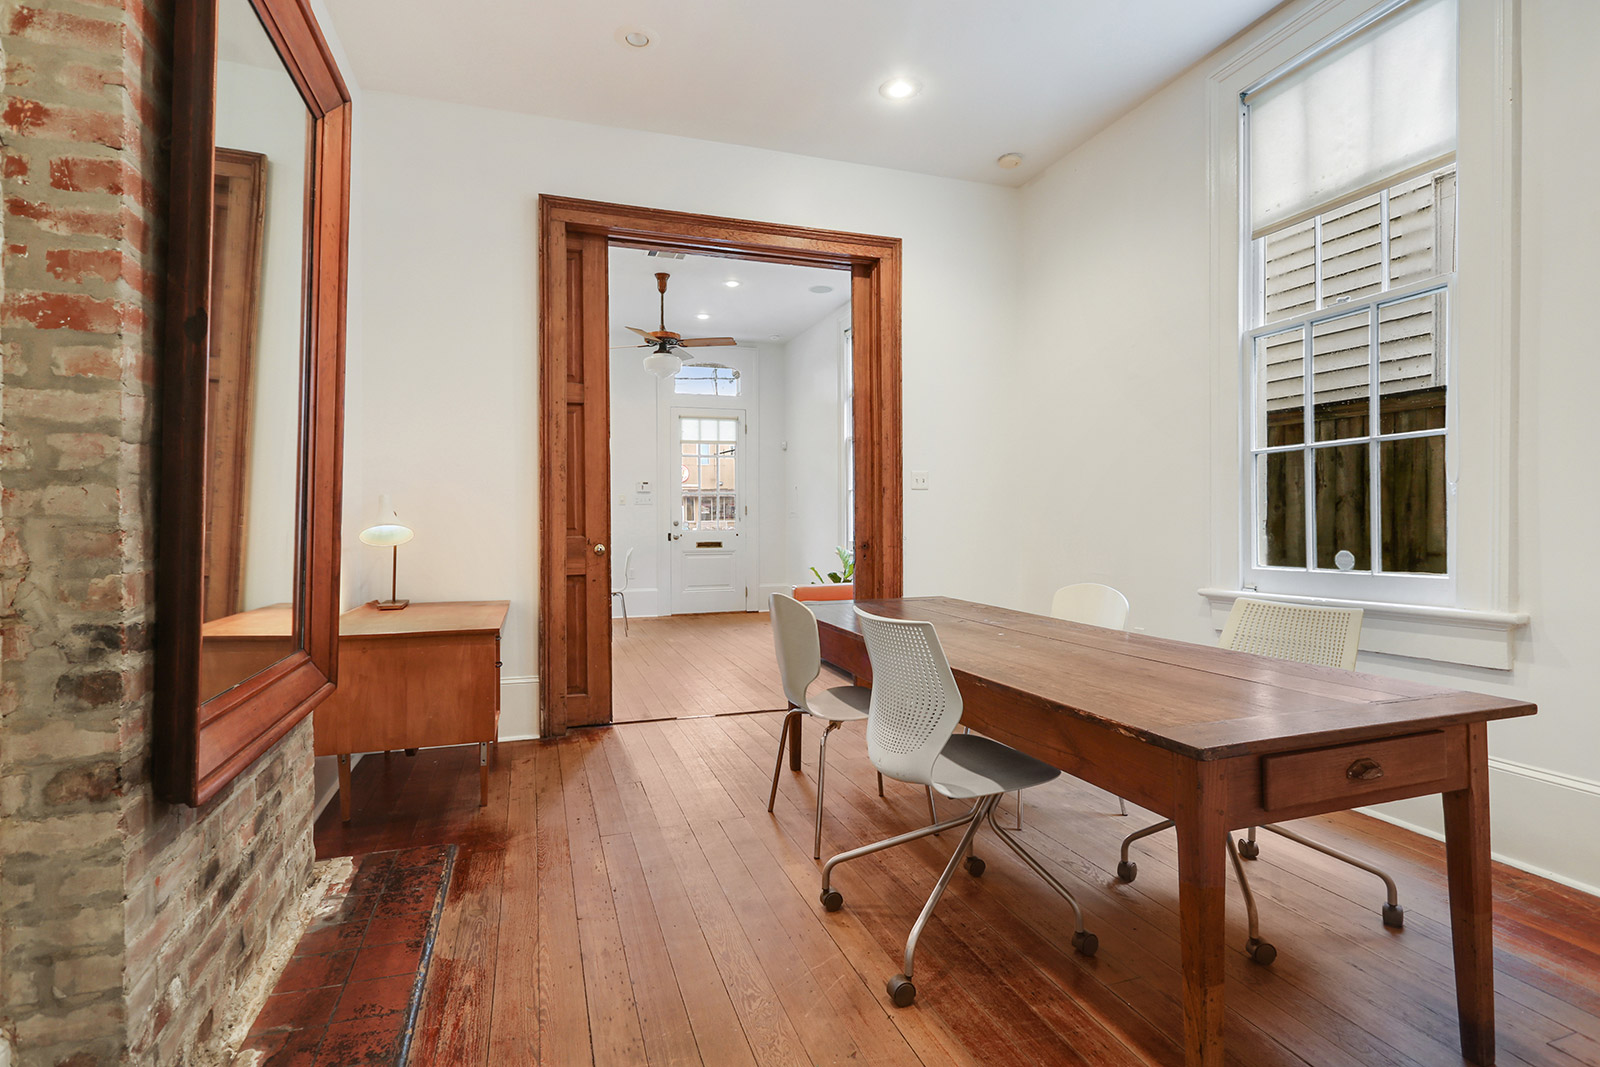 Uptown, Condo, 1 beds, 1.5 baths, $2800 per month New Orleans Rental - devie image_3